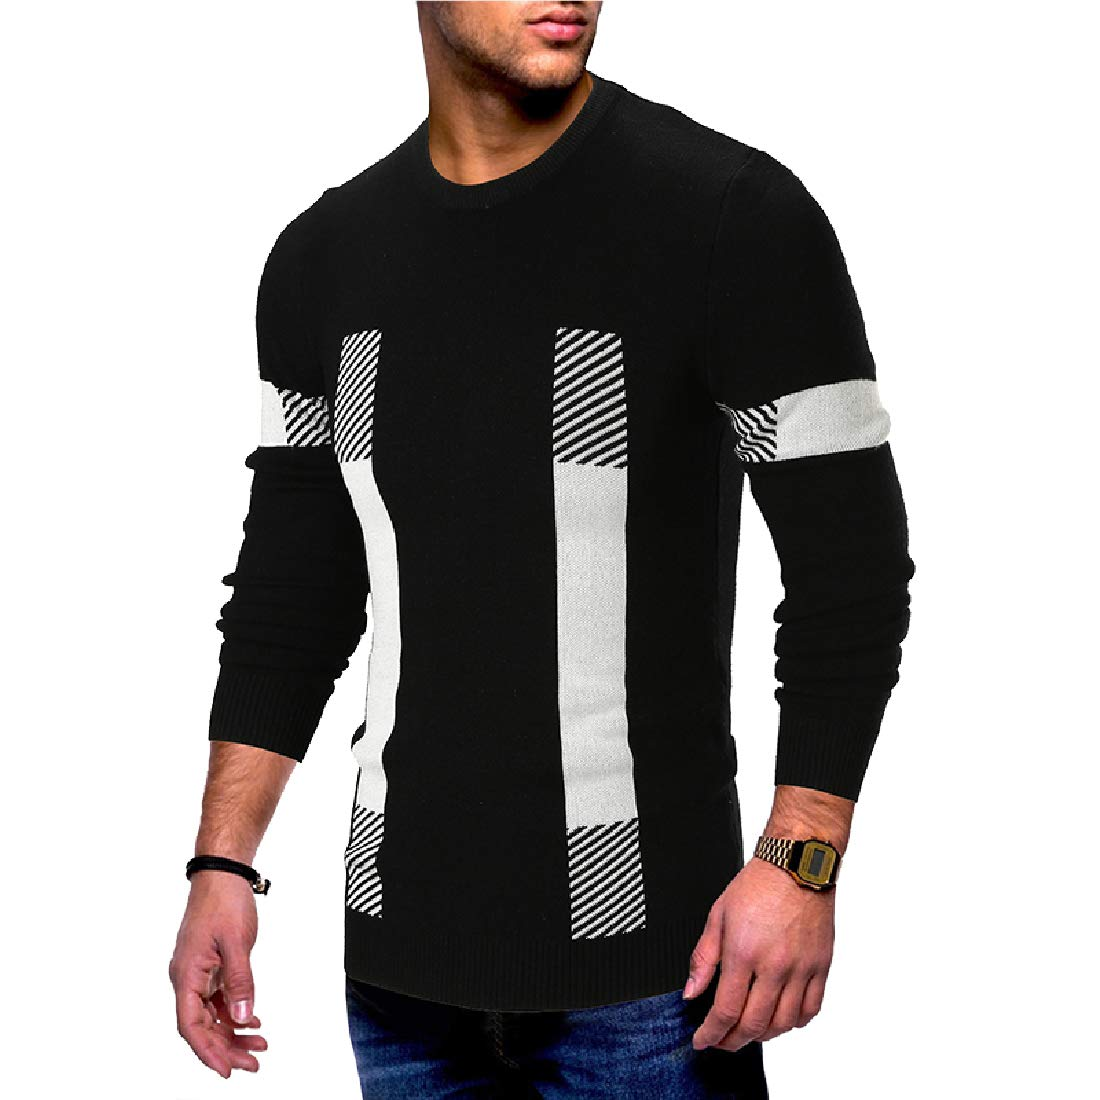 YUNY Men Autumn Winter Crew-Neck Knit Soft Fashion Fit Pullover Sweater Black M